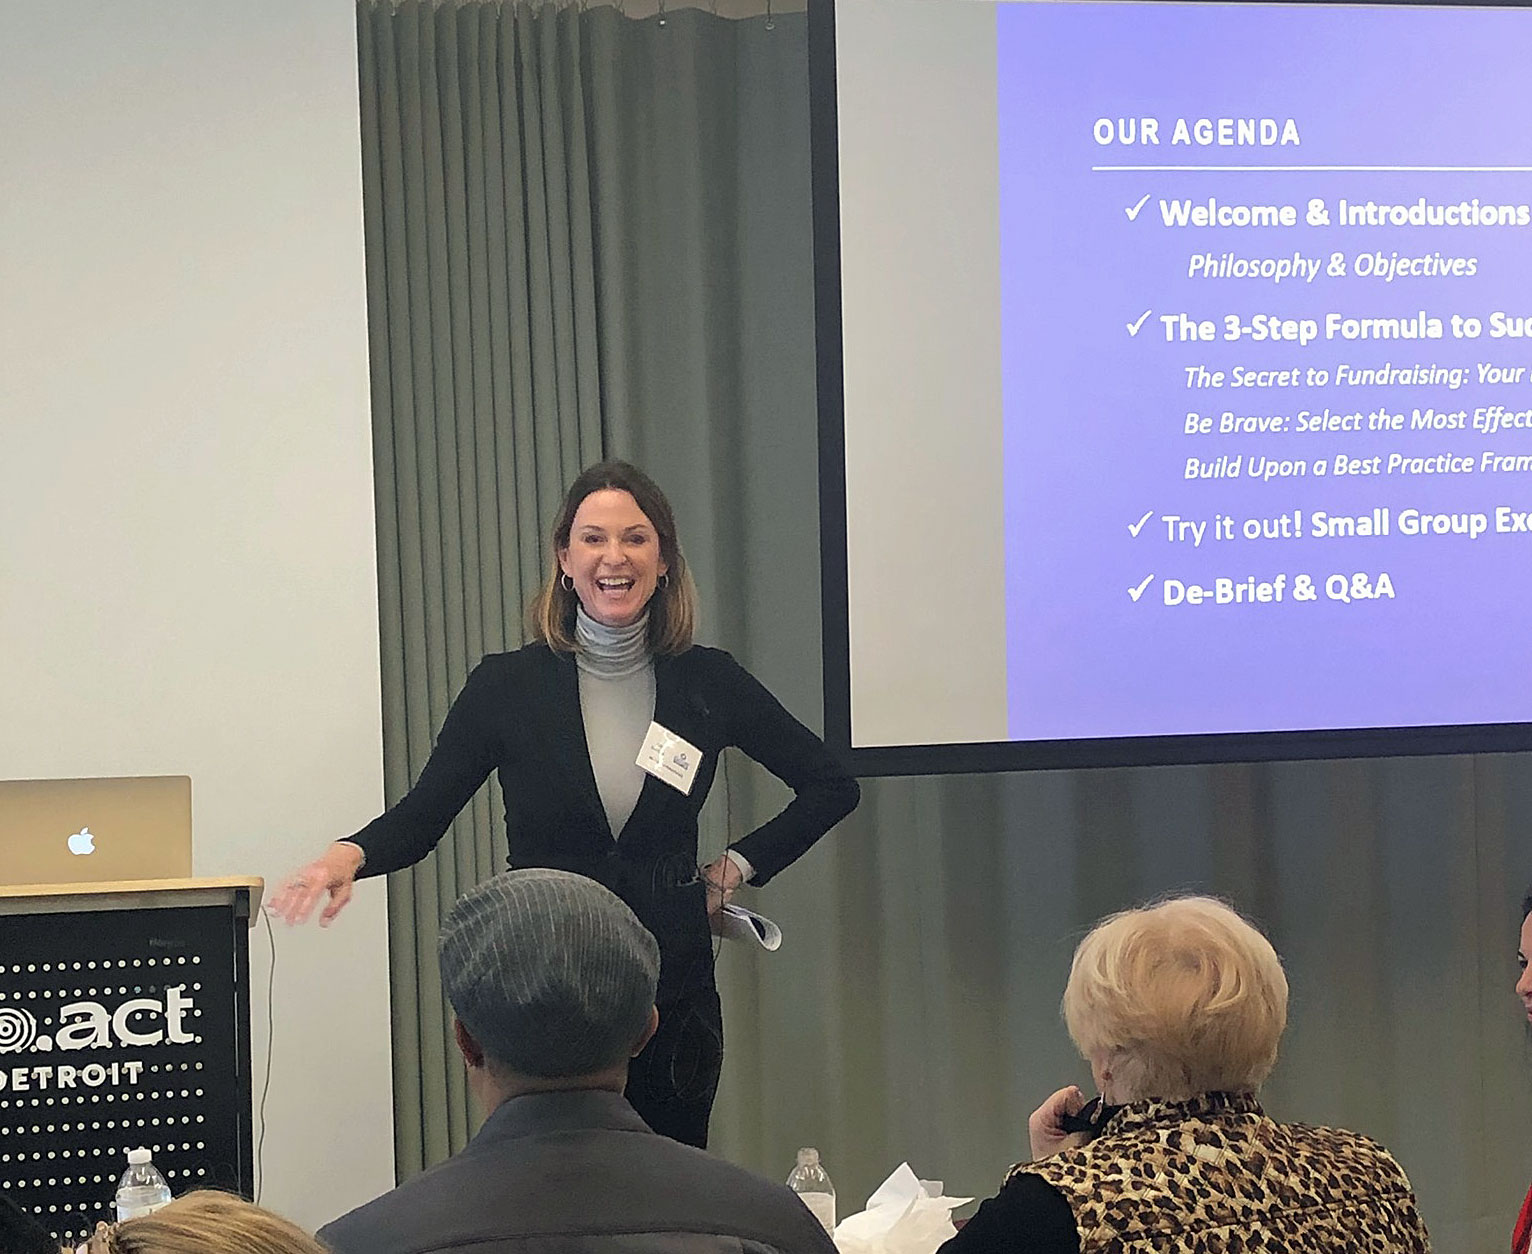 image of Aly Sterling standing infront of a presentation screen, teaching the CultureSource members in a workshop setting